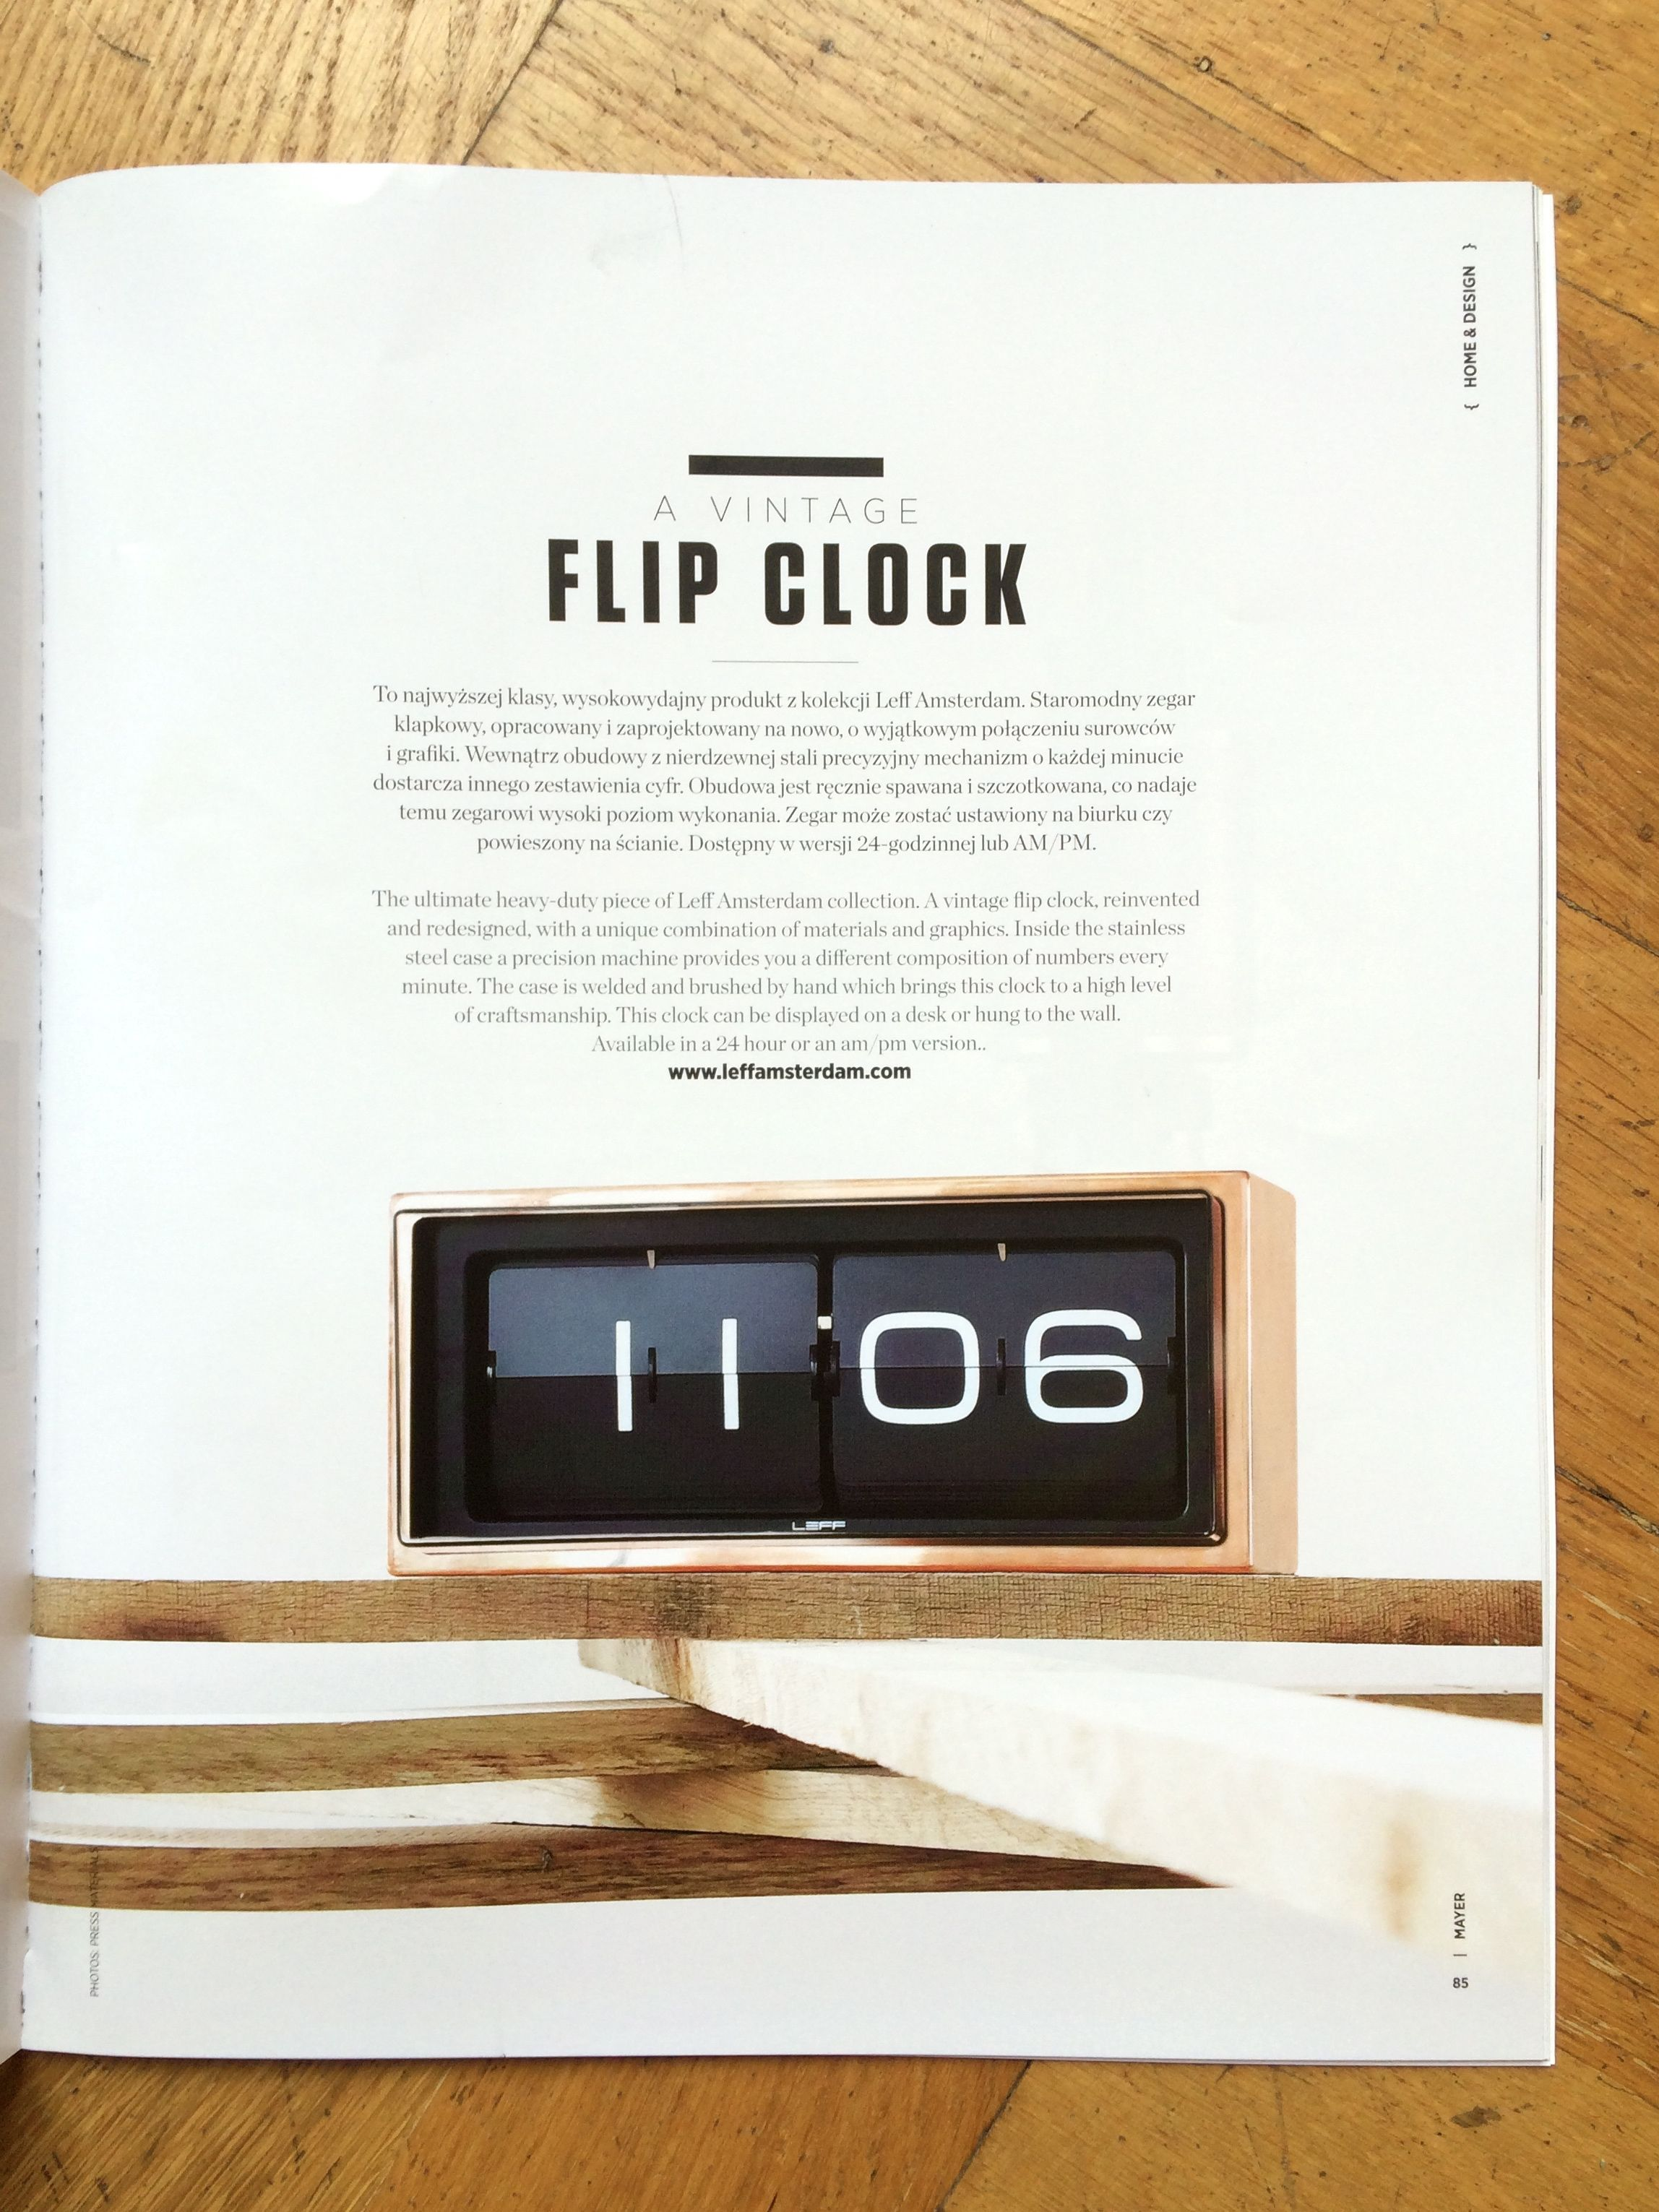 Captivating Copper Brick Flip Clock By Erwin Termaat For LEFF #Amsterdam In MAYER  Magazine.